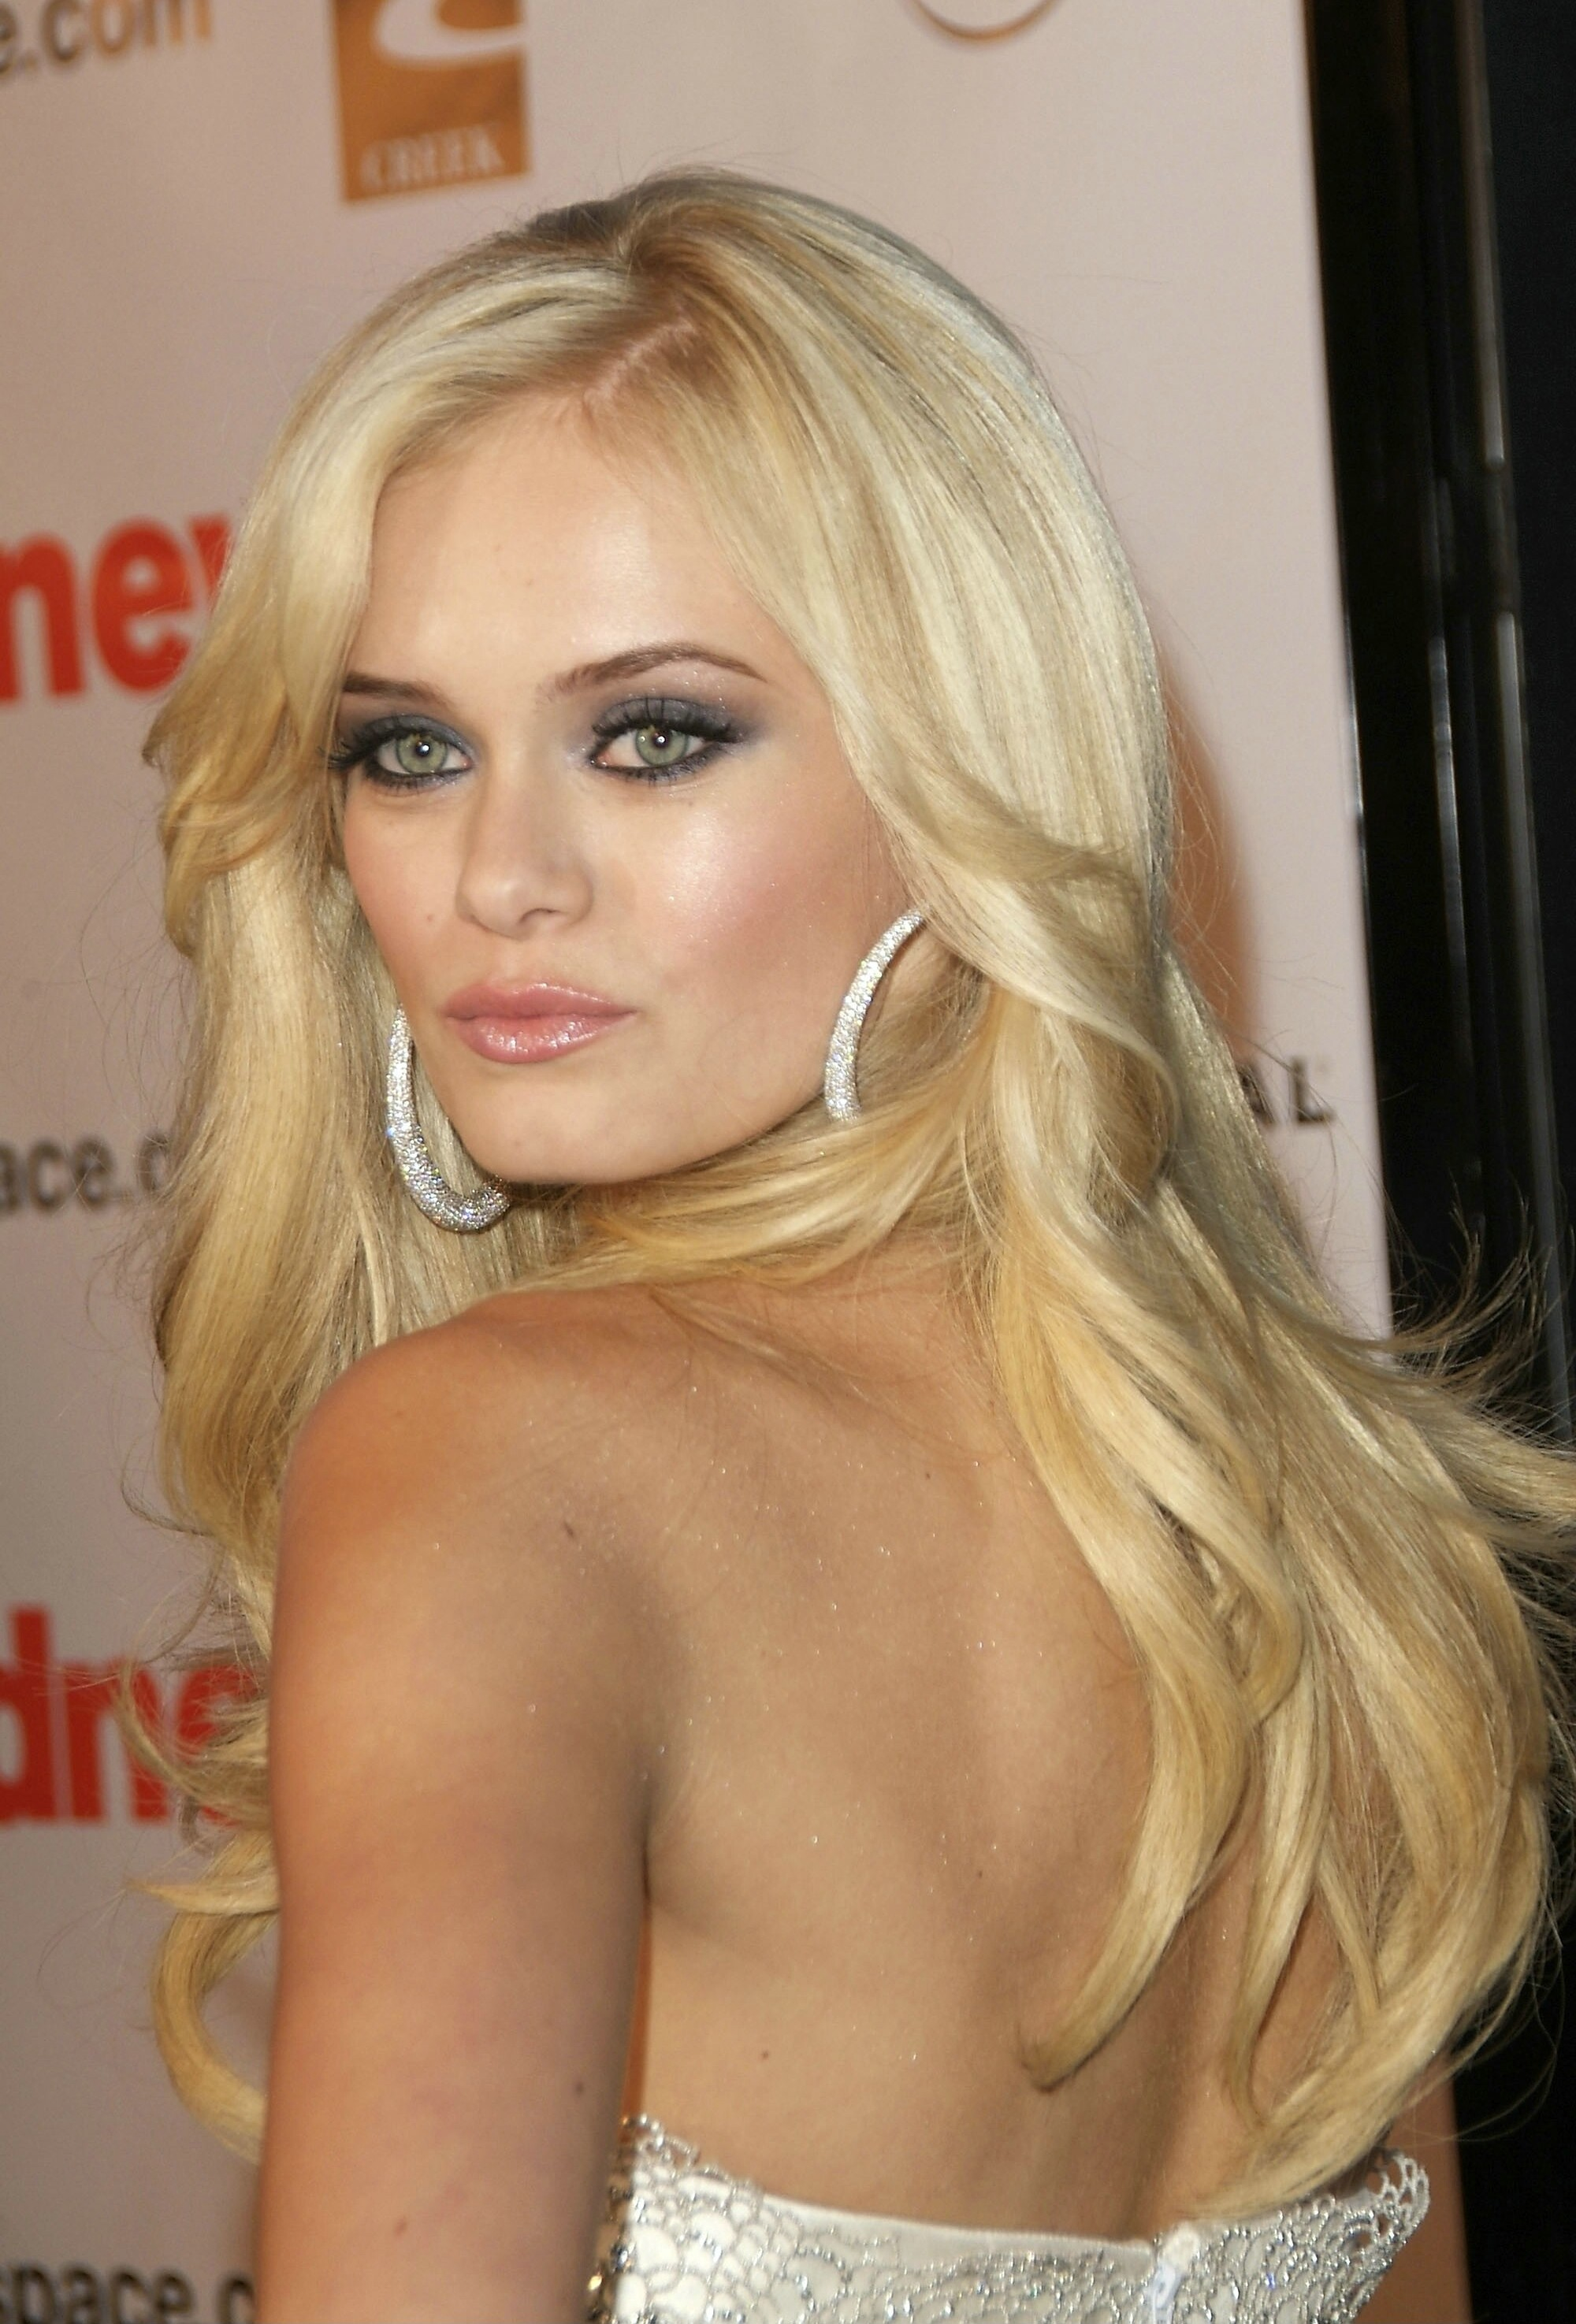 Sara Paxton Backgrounds, Compatible - PC, Mobile, Gadgets| 2000x2950 px